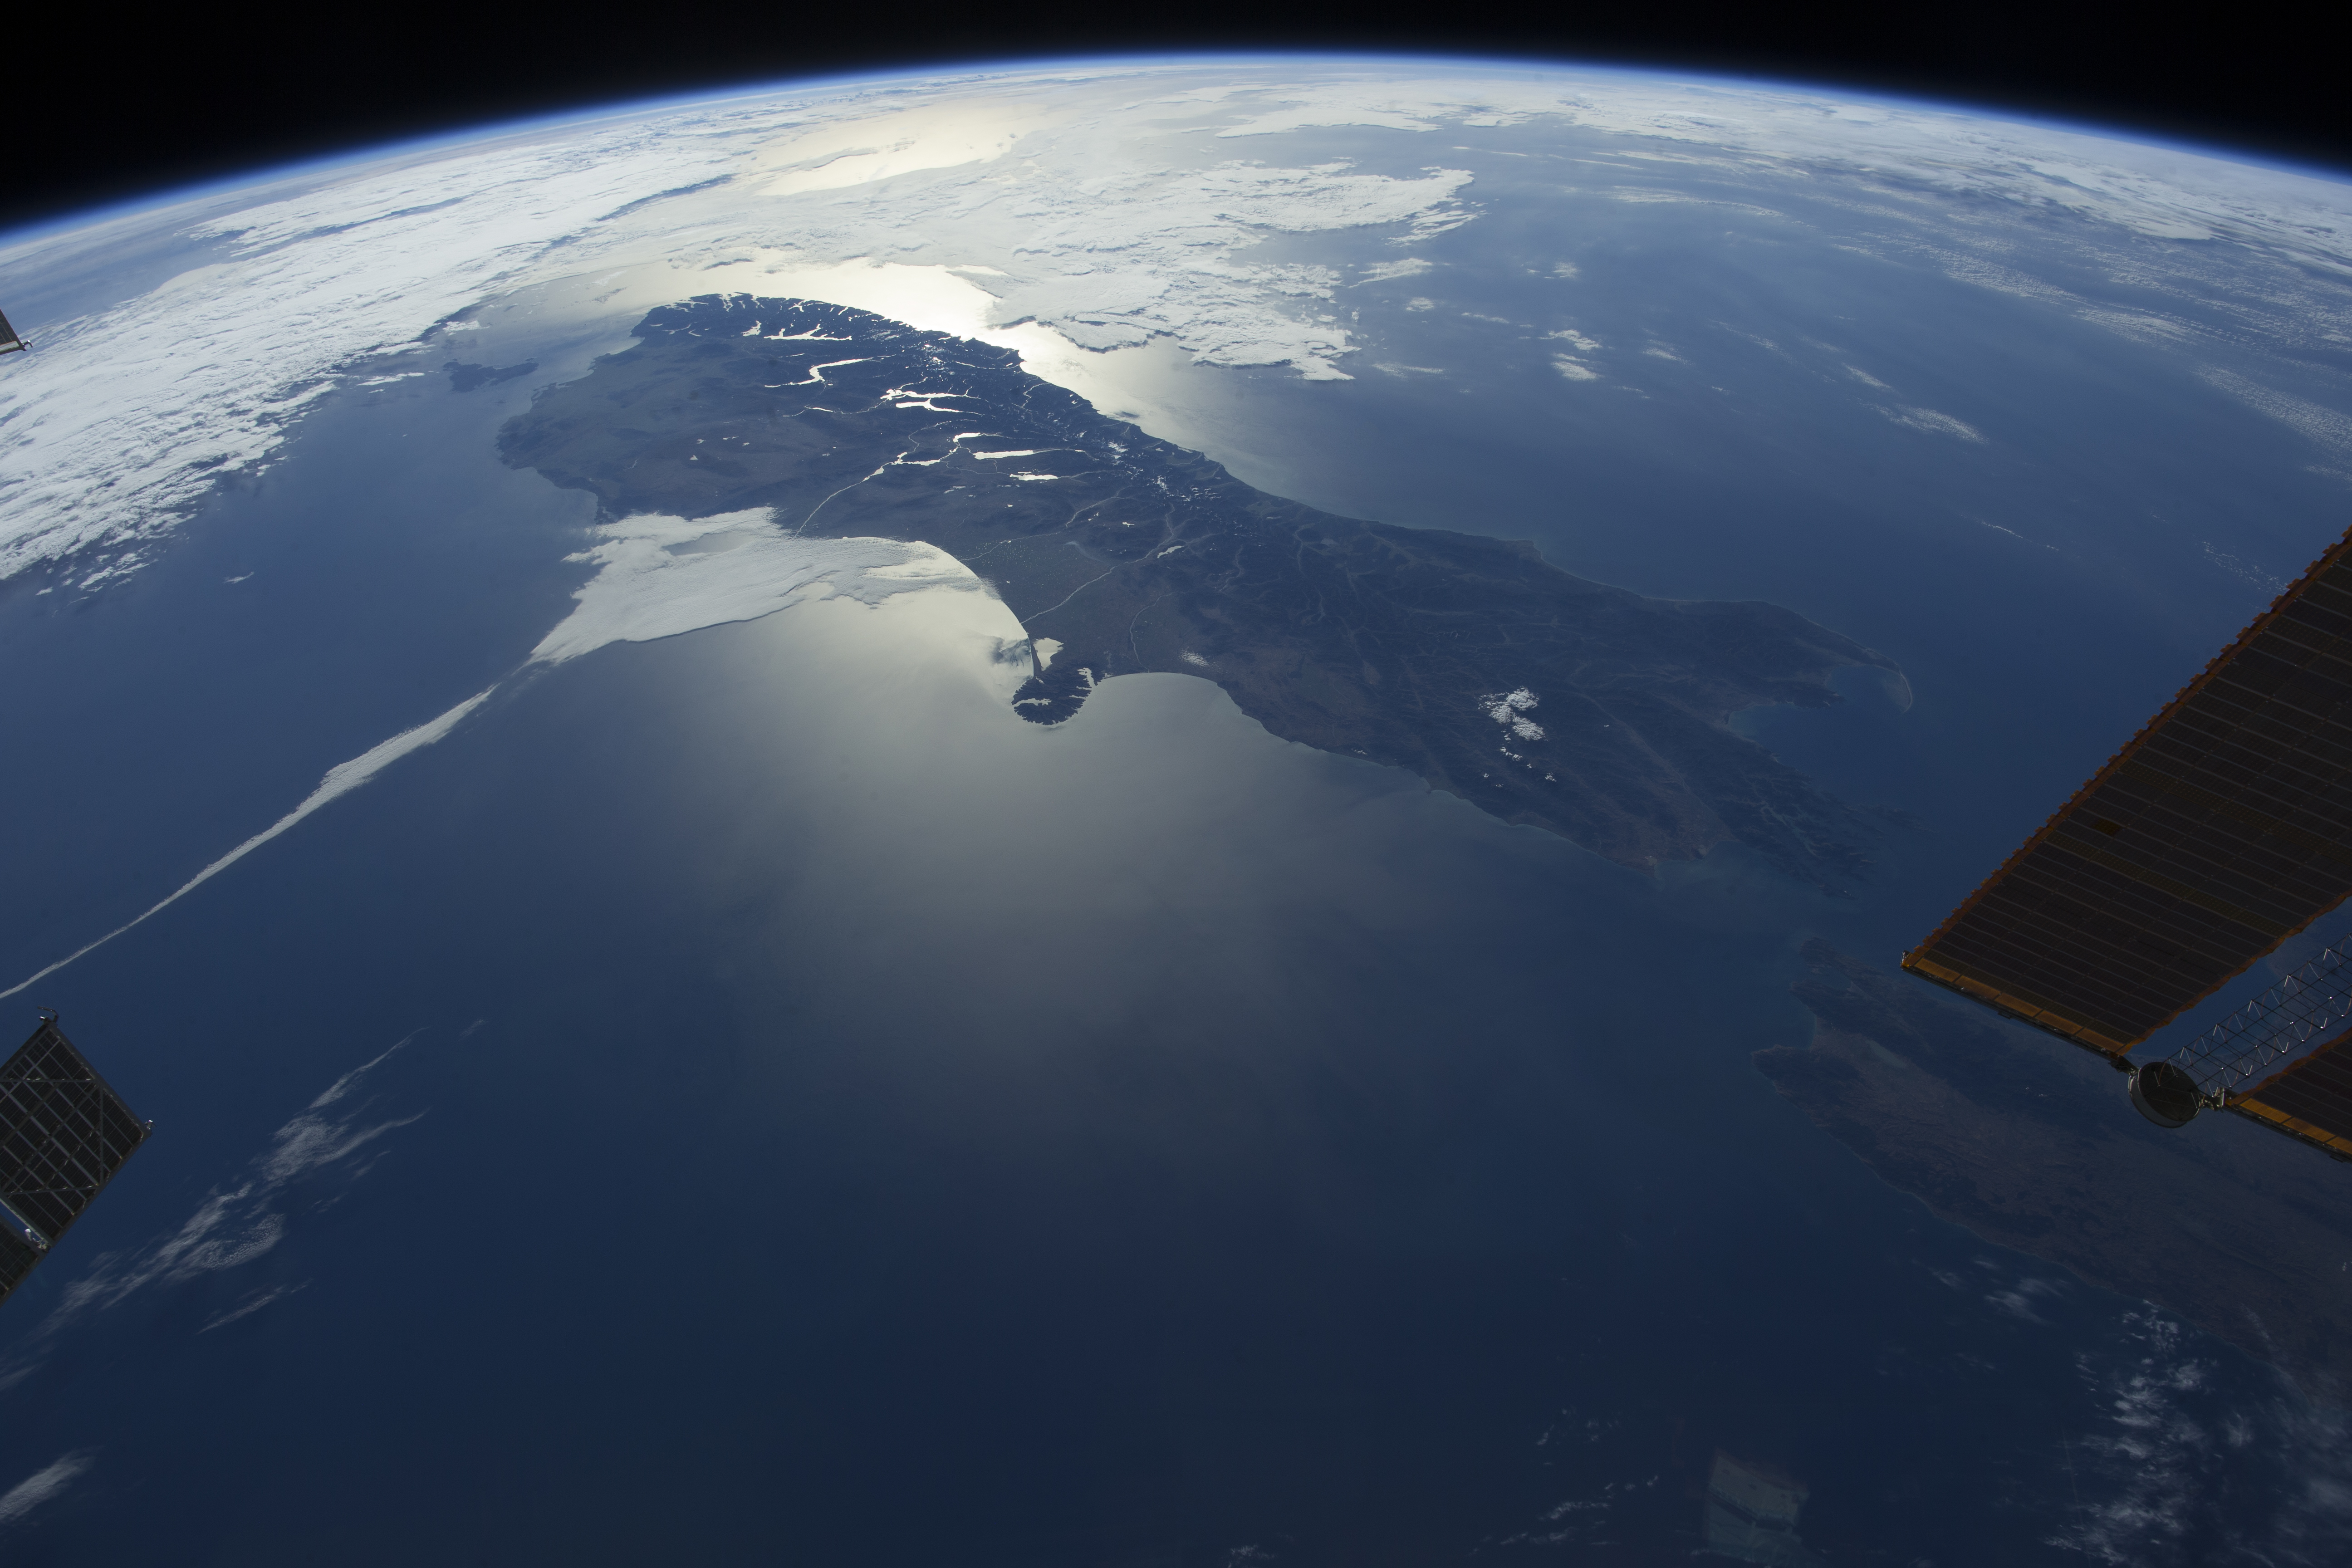 A view of the Earth, as seen in the IMAX film A Beautiful Planet.